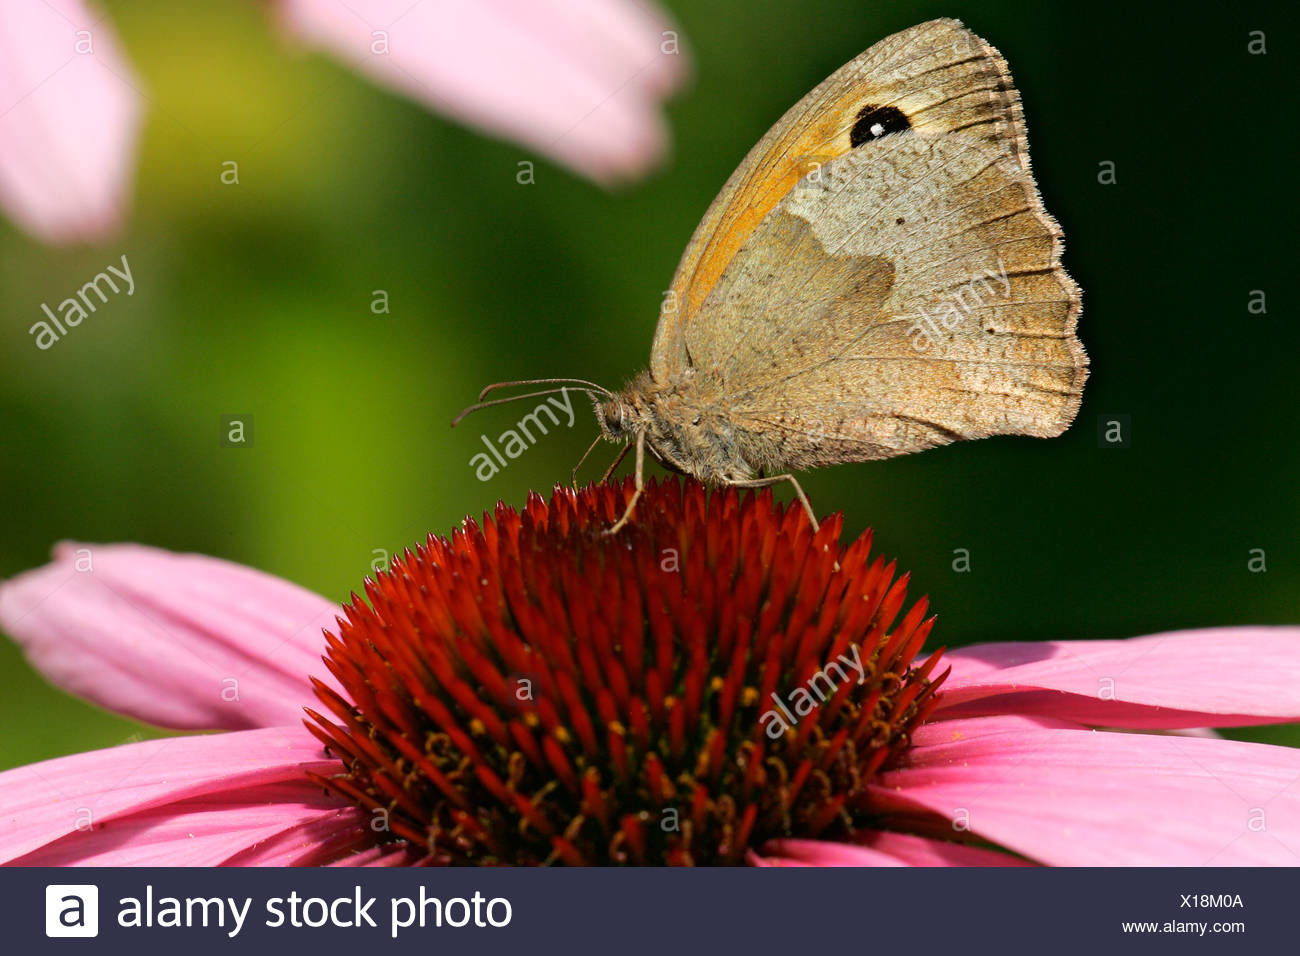 Meadow brown butterfly sitting on a purple cone flower blossom - butterfly (Maniola jurtina) (Echinacea purpurea) - Stock Image